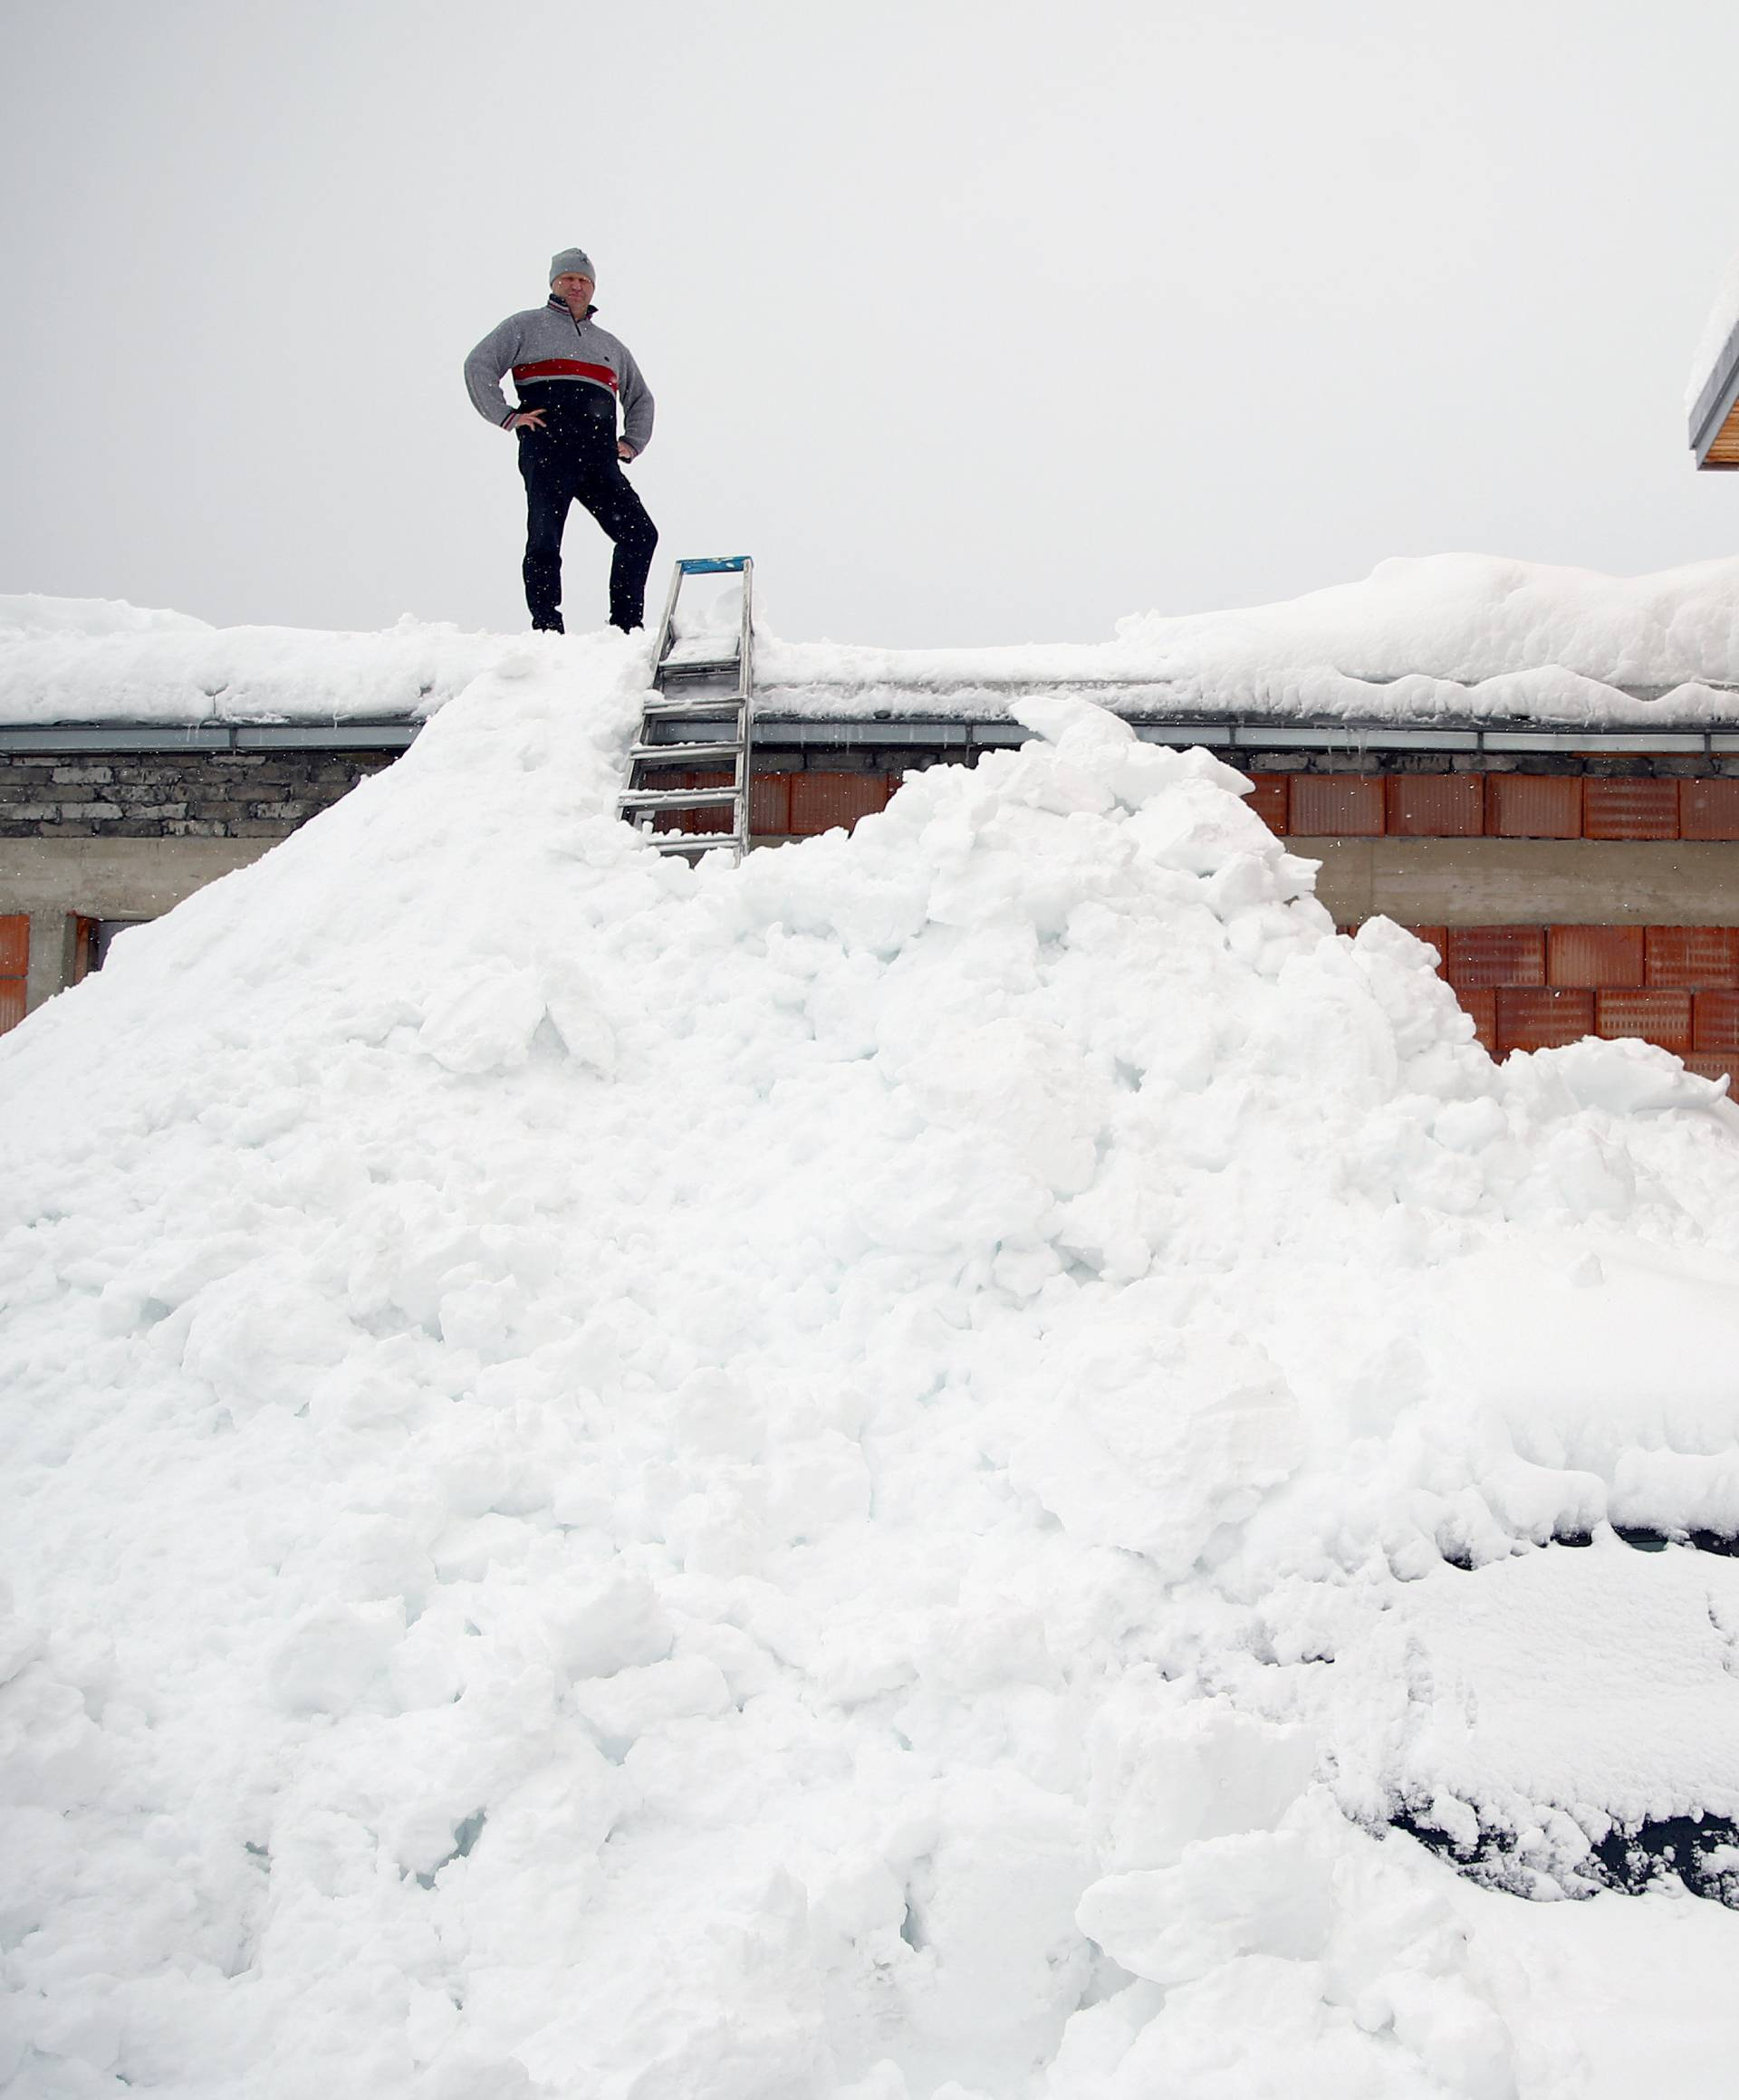 Gottfried Klapfer stands on the rooftop of his company's building during heavy snowfall in Eisenerz